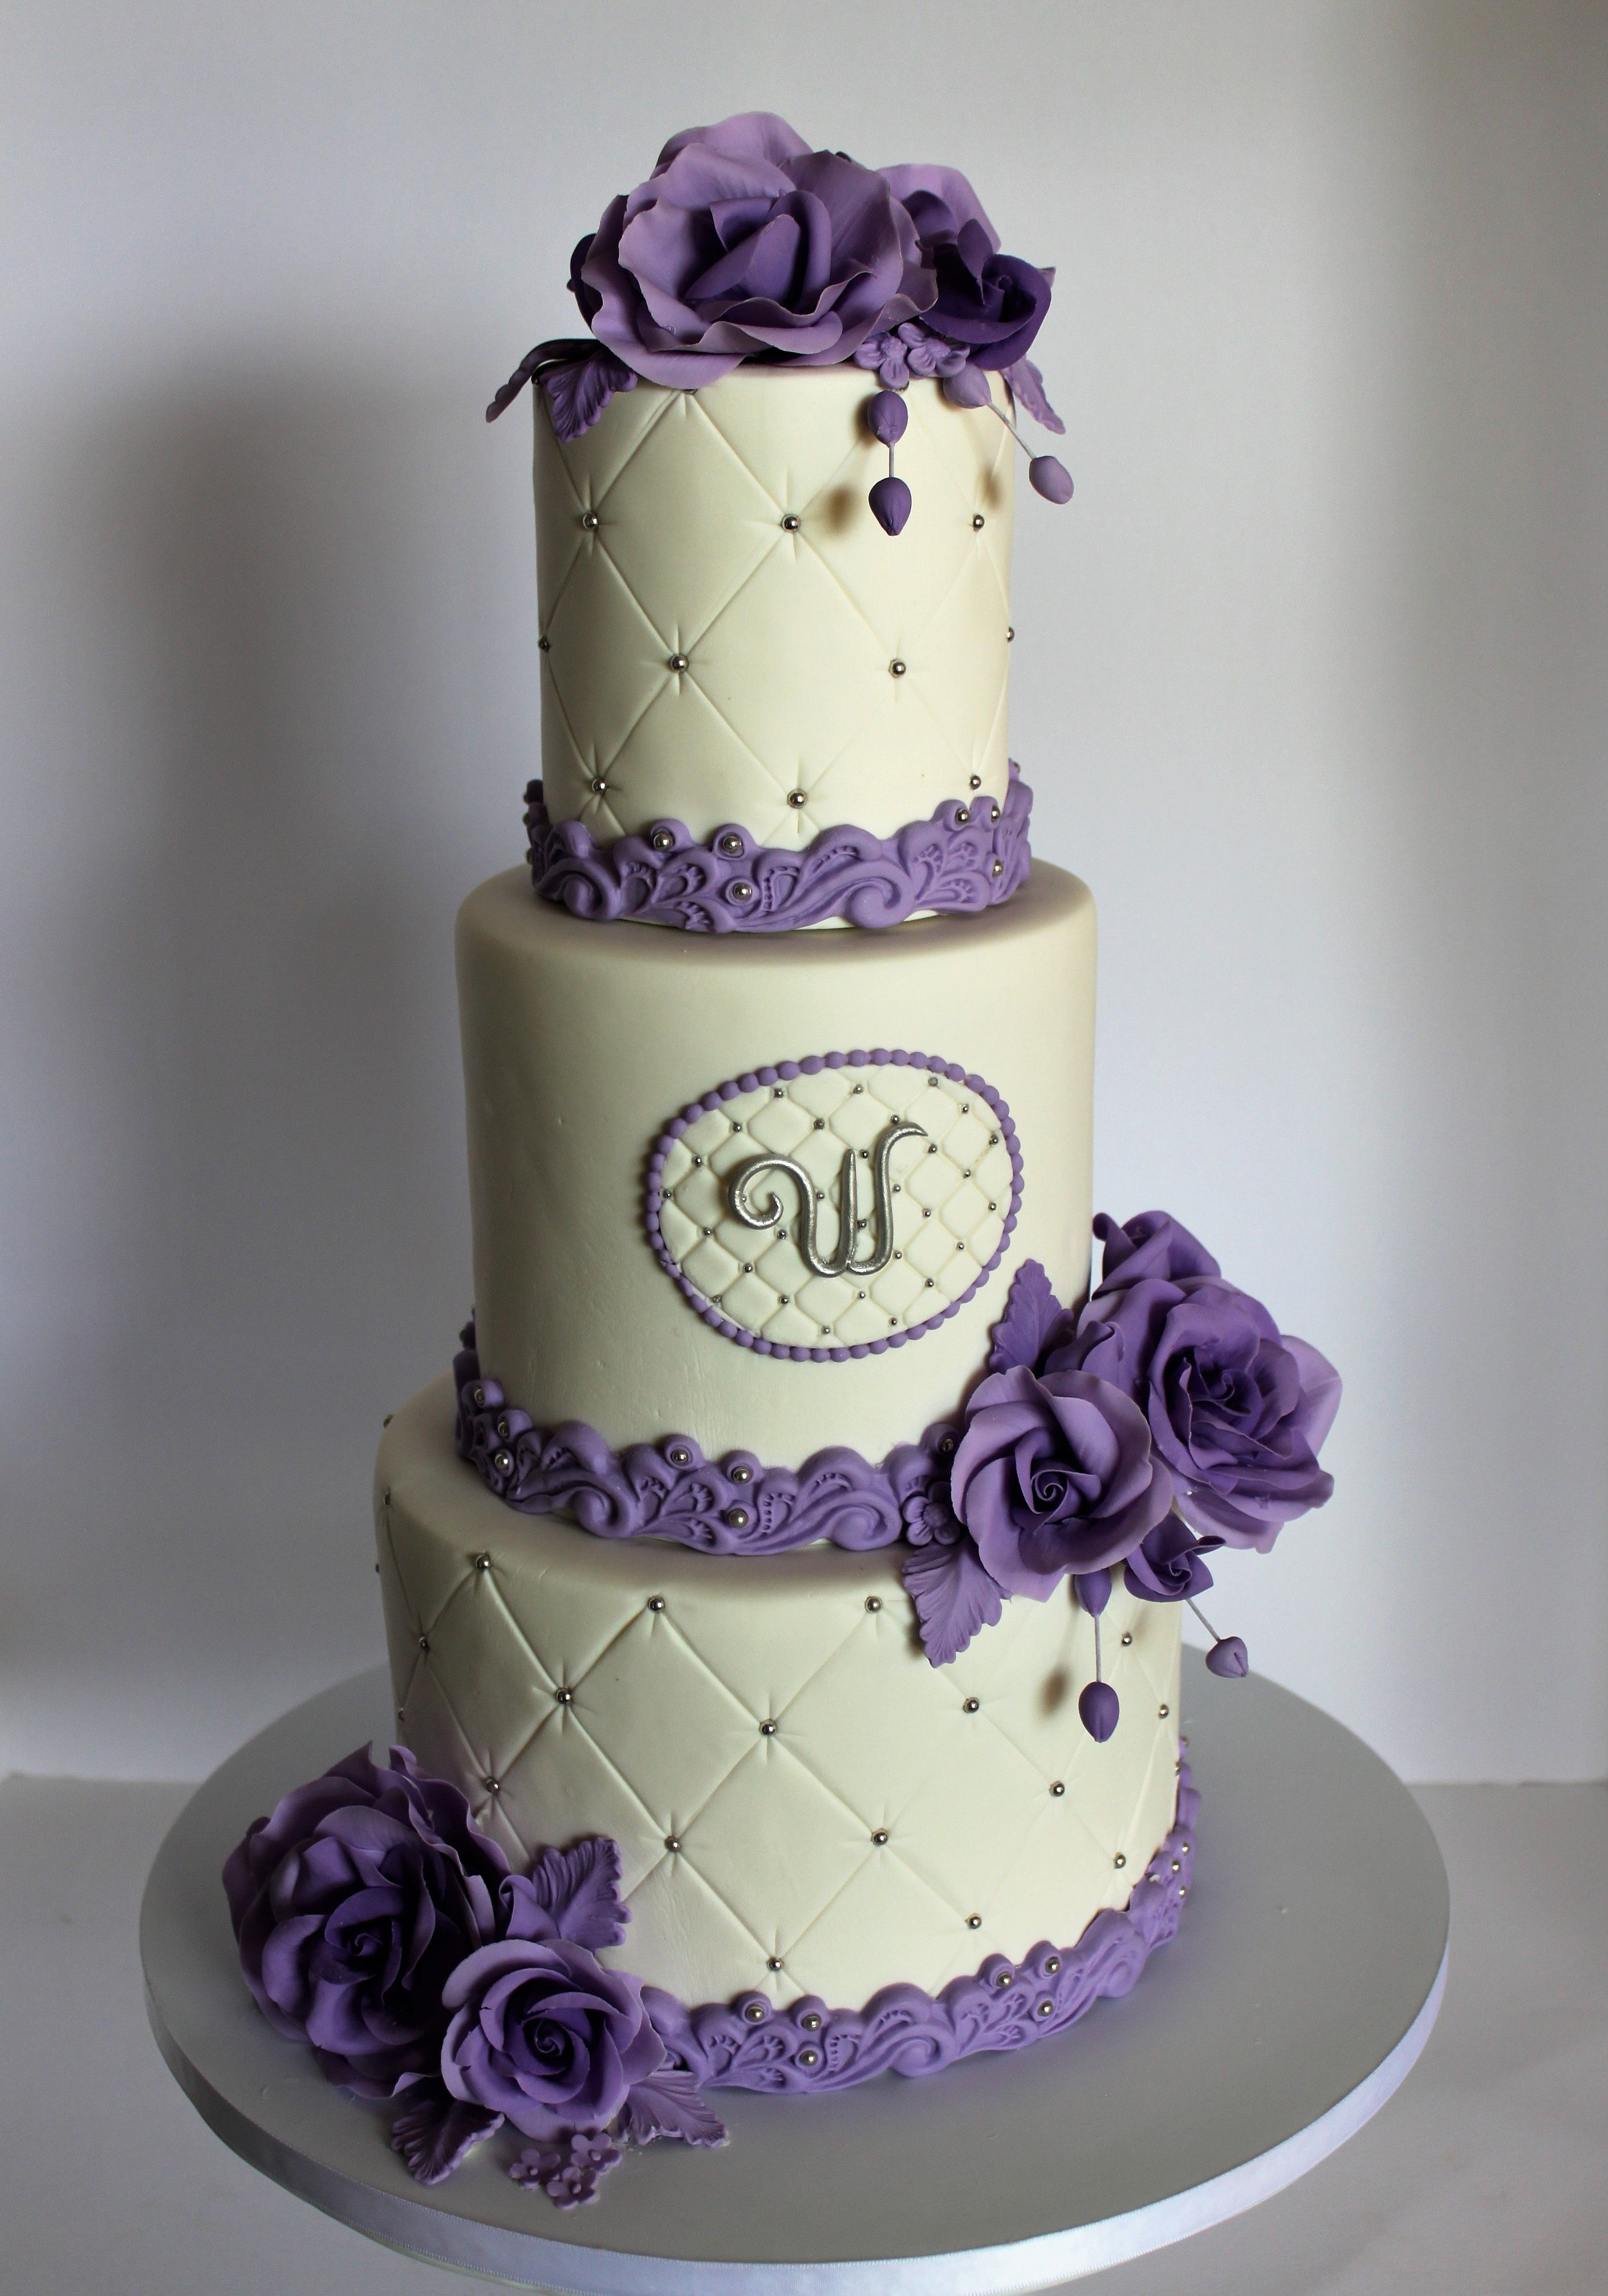 Wedding cake with purple roses and quilted pattern